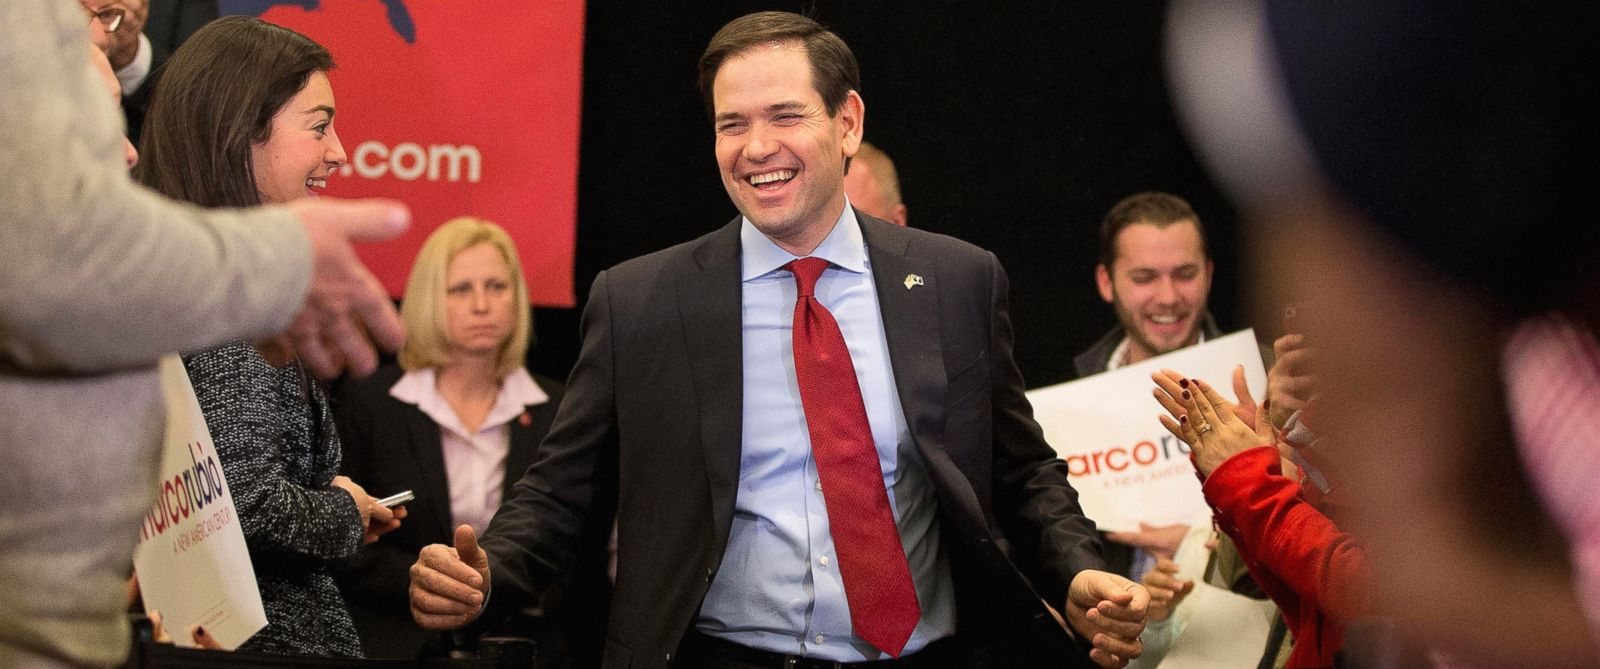 PHOTO: Republican presidential candidate, Sen. Marco Rubio, takes the stage for a rally, Feb. 19, 2016, in Columbia, S.C.